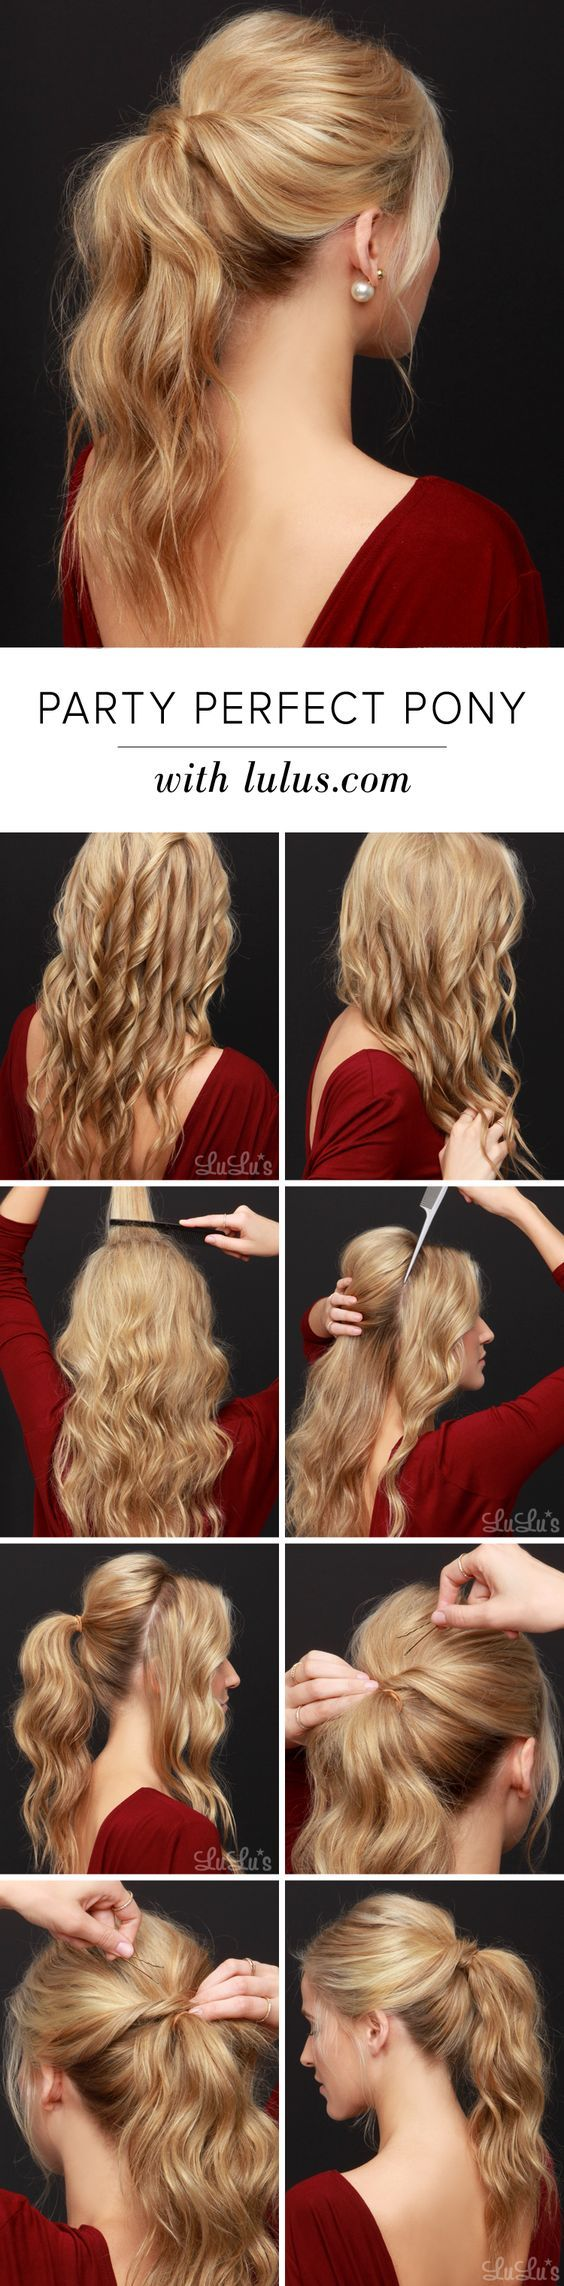 There is not much time and you need to look beautiful as always?Quick Hairstyles tips is what you need most during such a situation. You see it is not always about getting a makeup or doing your hair, sometimes it is all about doing it very fast and that is when you need goodQuick Hairstyles …